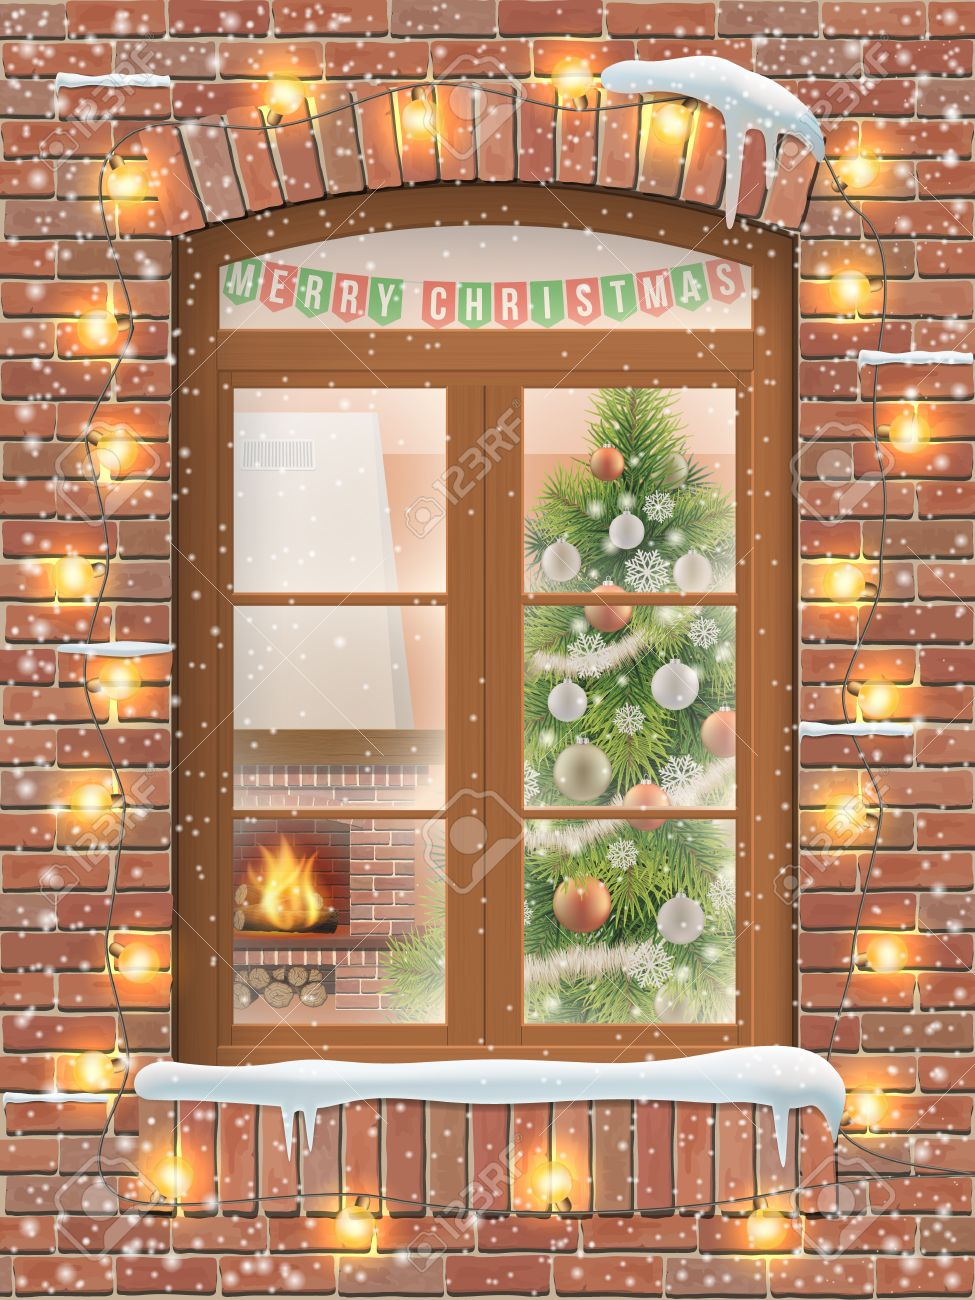 View through a window on the interior of a Christmas living room with the Christmas tree and fireplace. The brick facade of the house is decorated with a garland of light bulbs. - 65518889